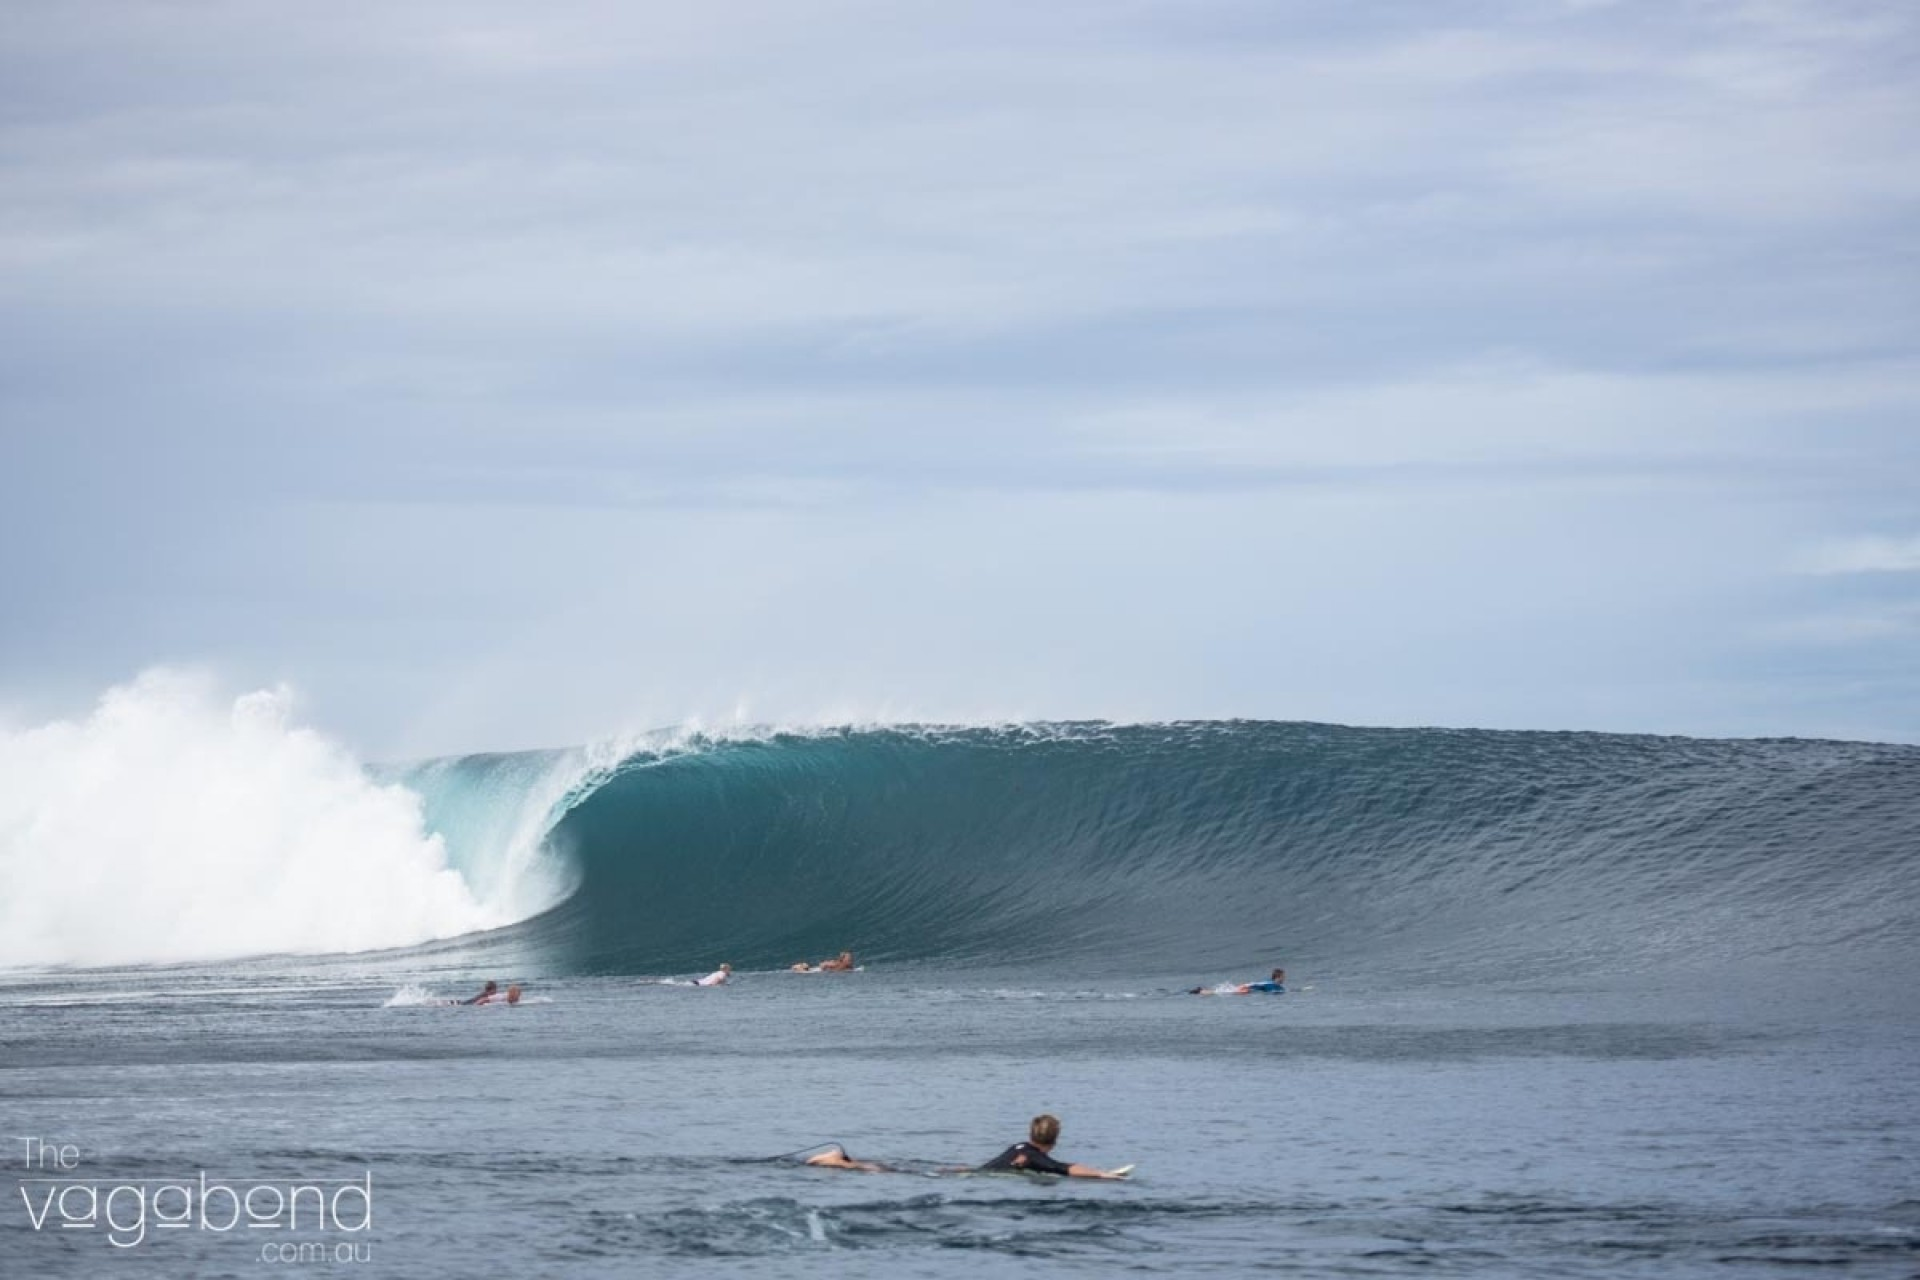 LHTheVagabond's photo of Tavarua - Cloudbreak